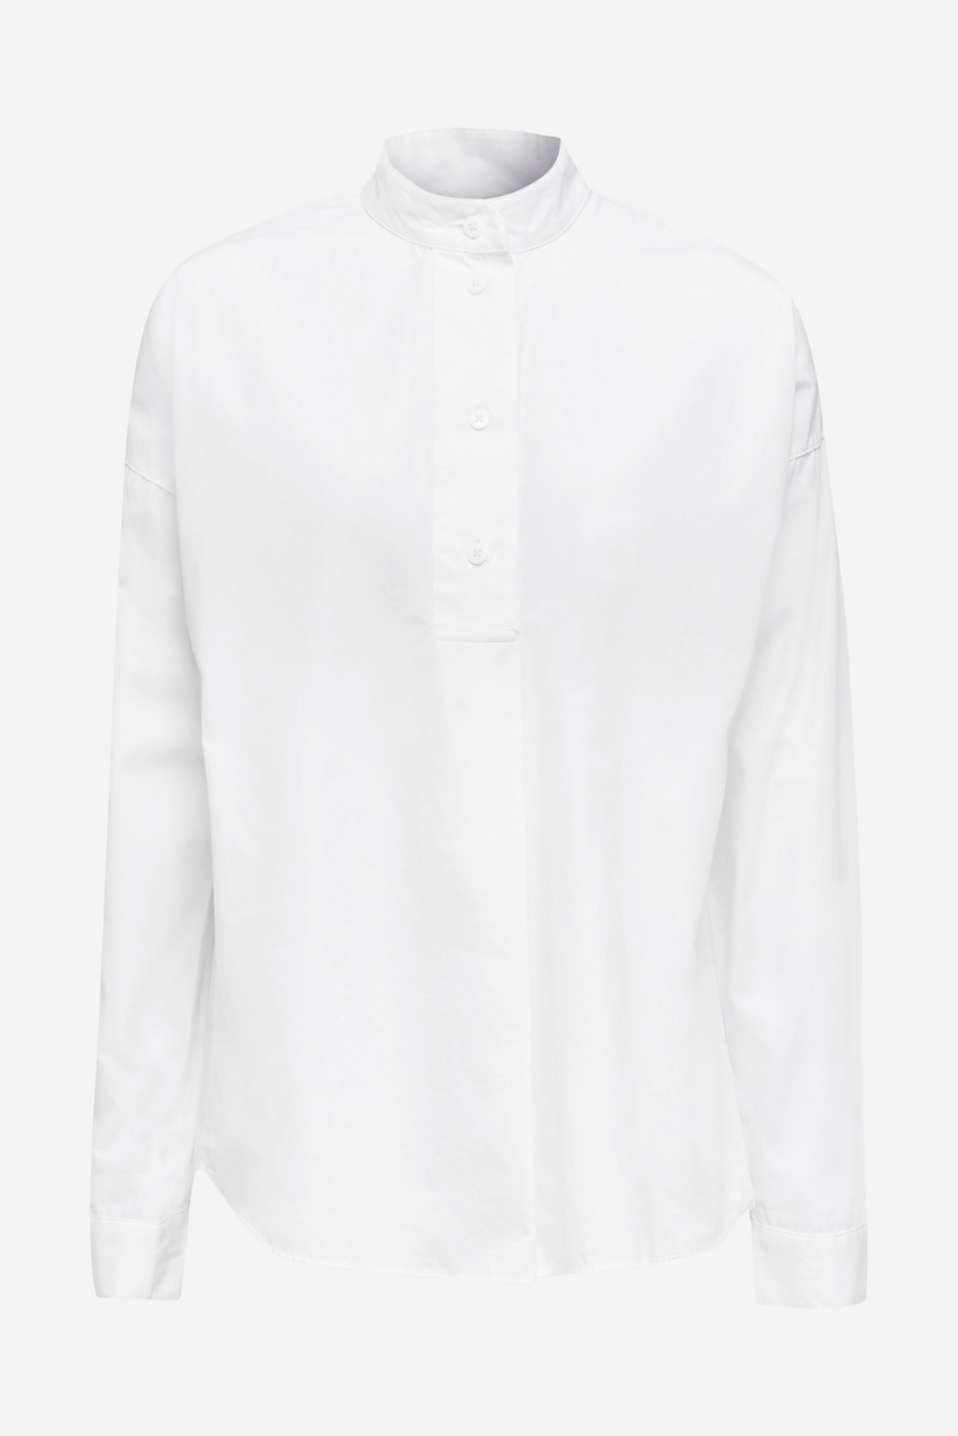 Oversized blouse with a stand-up collar, 100% cotton, WHITE, detail image number 6